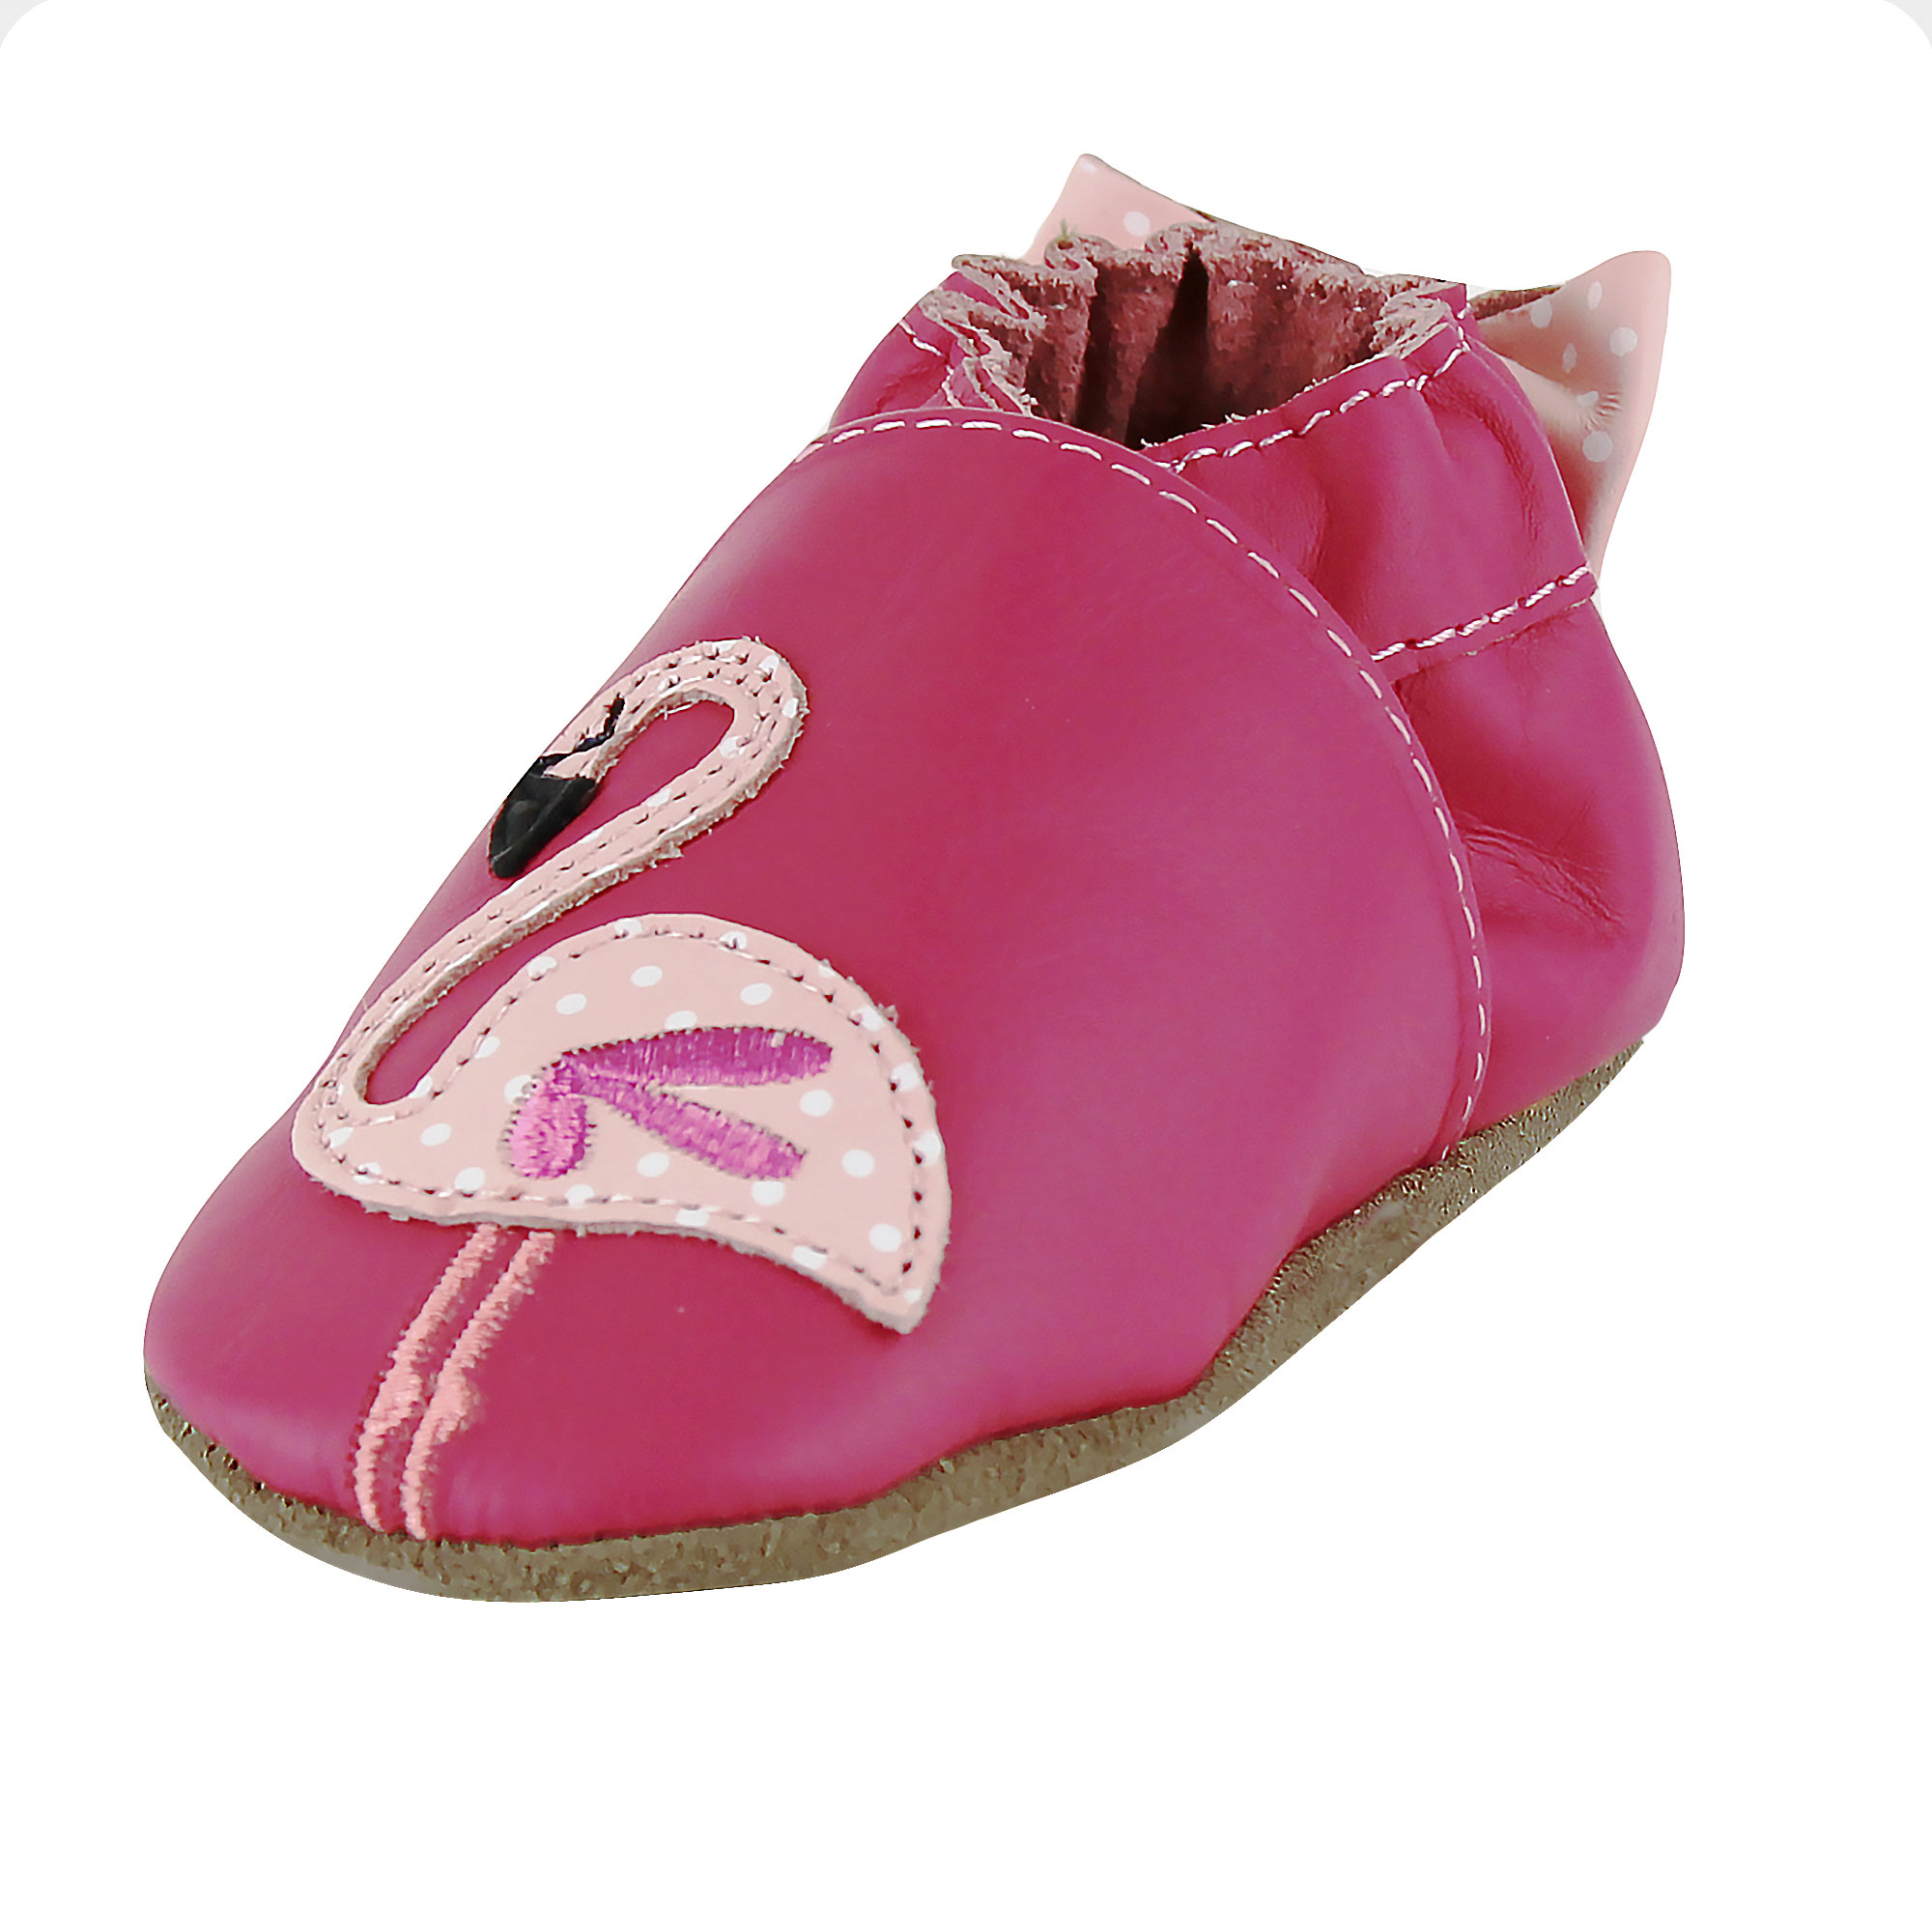 Robeez Baby Girls Pinky The Flamingo Prewalker Leather Baby Shoes Crib Shoes  18-24 Months Pink Soft Sole Sneakers - Walmart.com 6db0f3565